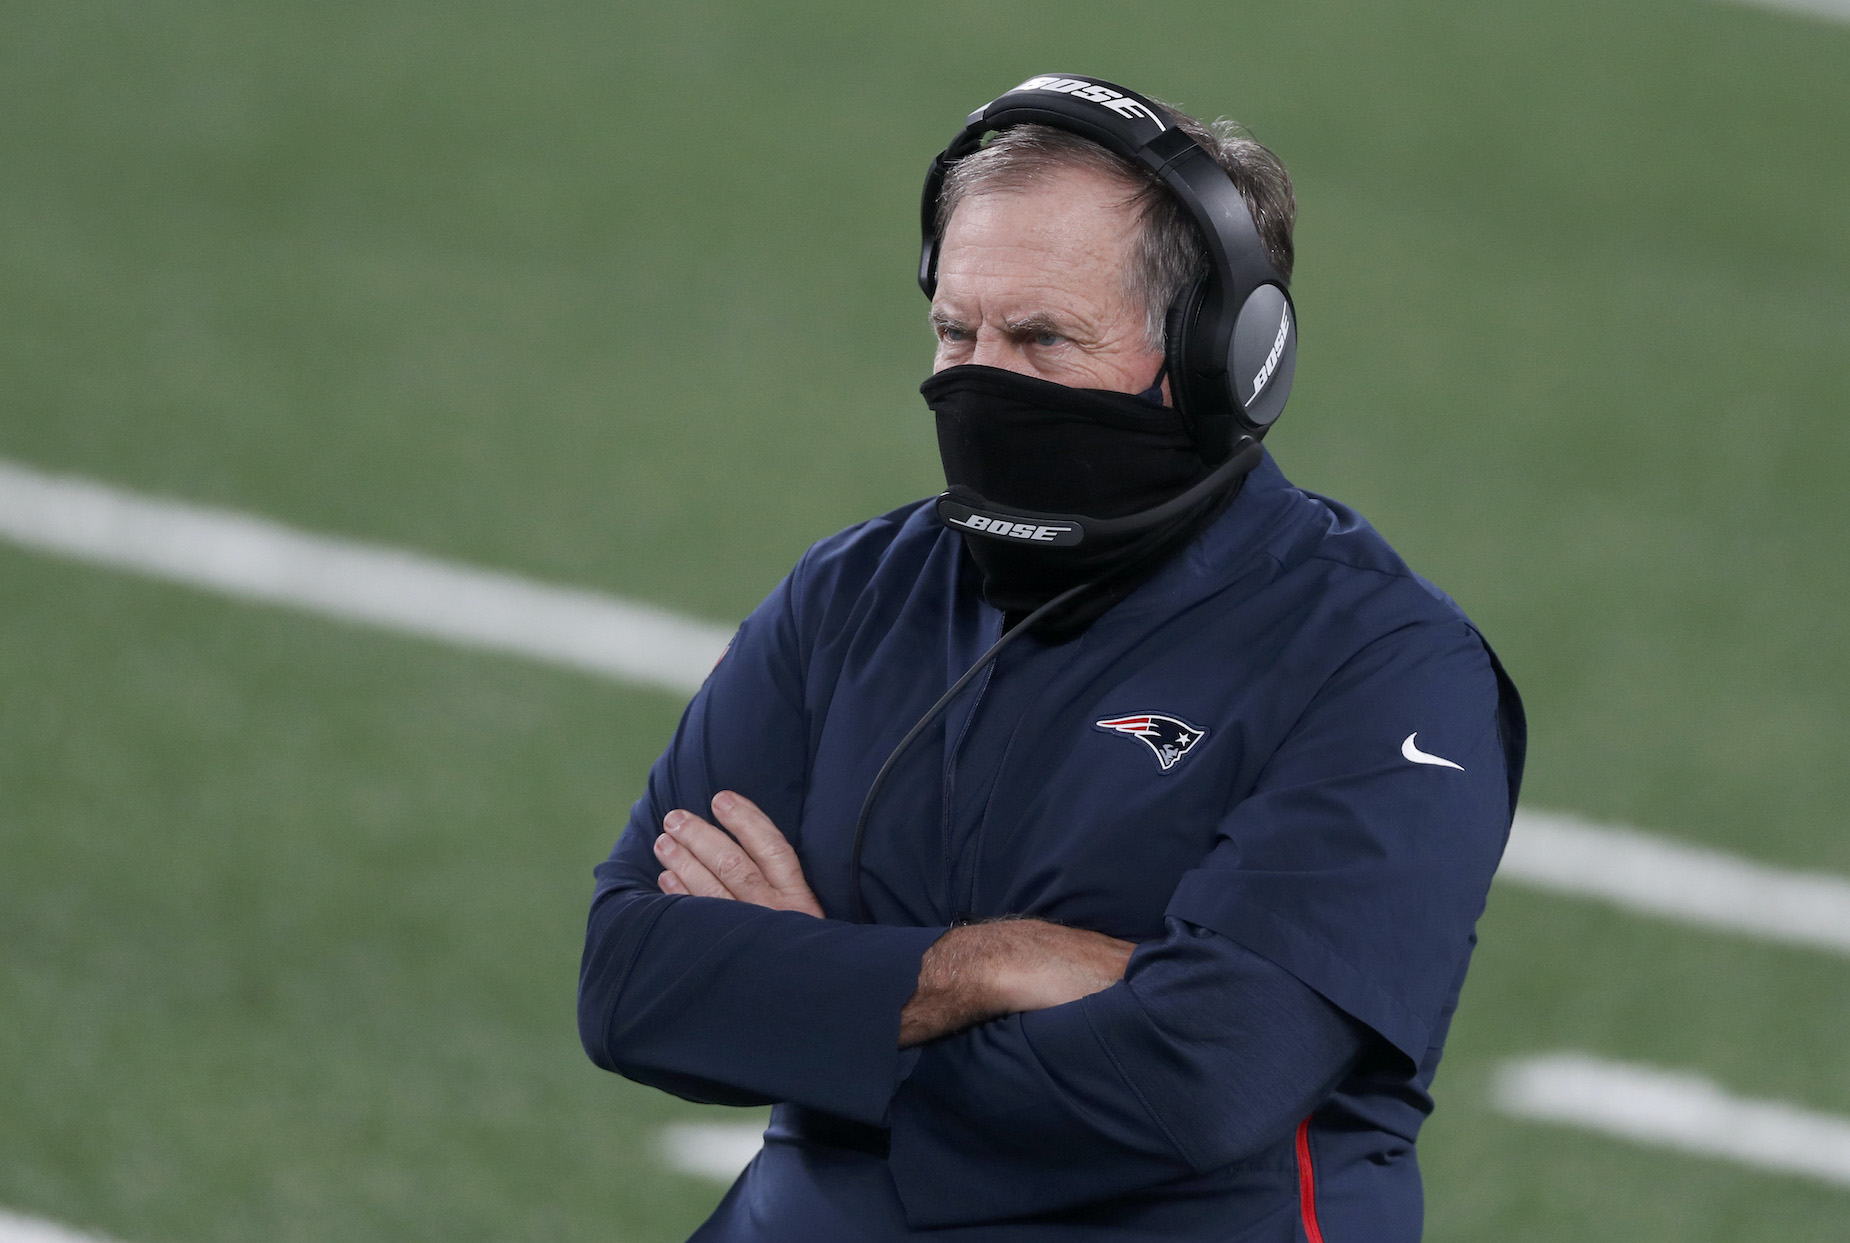 Bill Belichick Just Got Some Extra Bulletin Board Material Ahead of the 2021 Patriots' Campaign